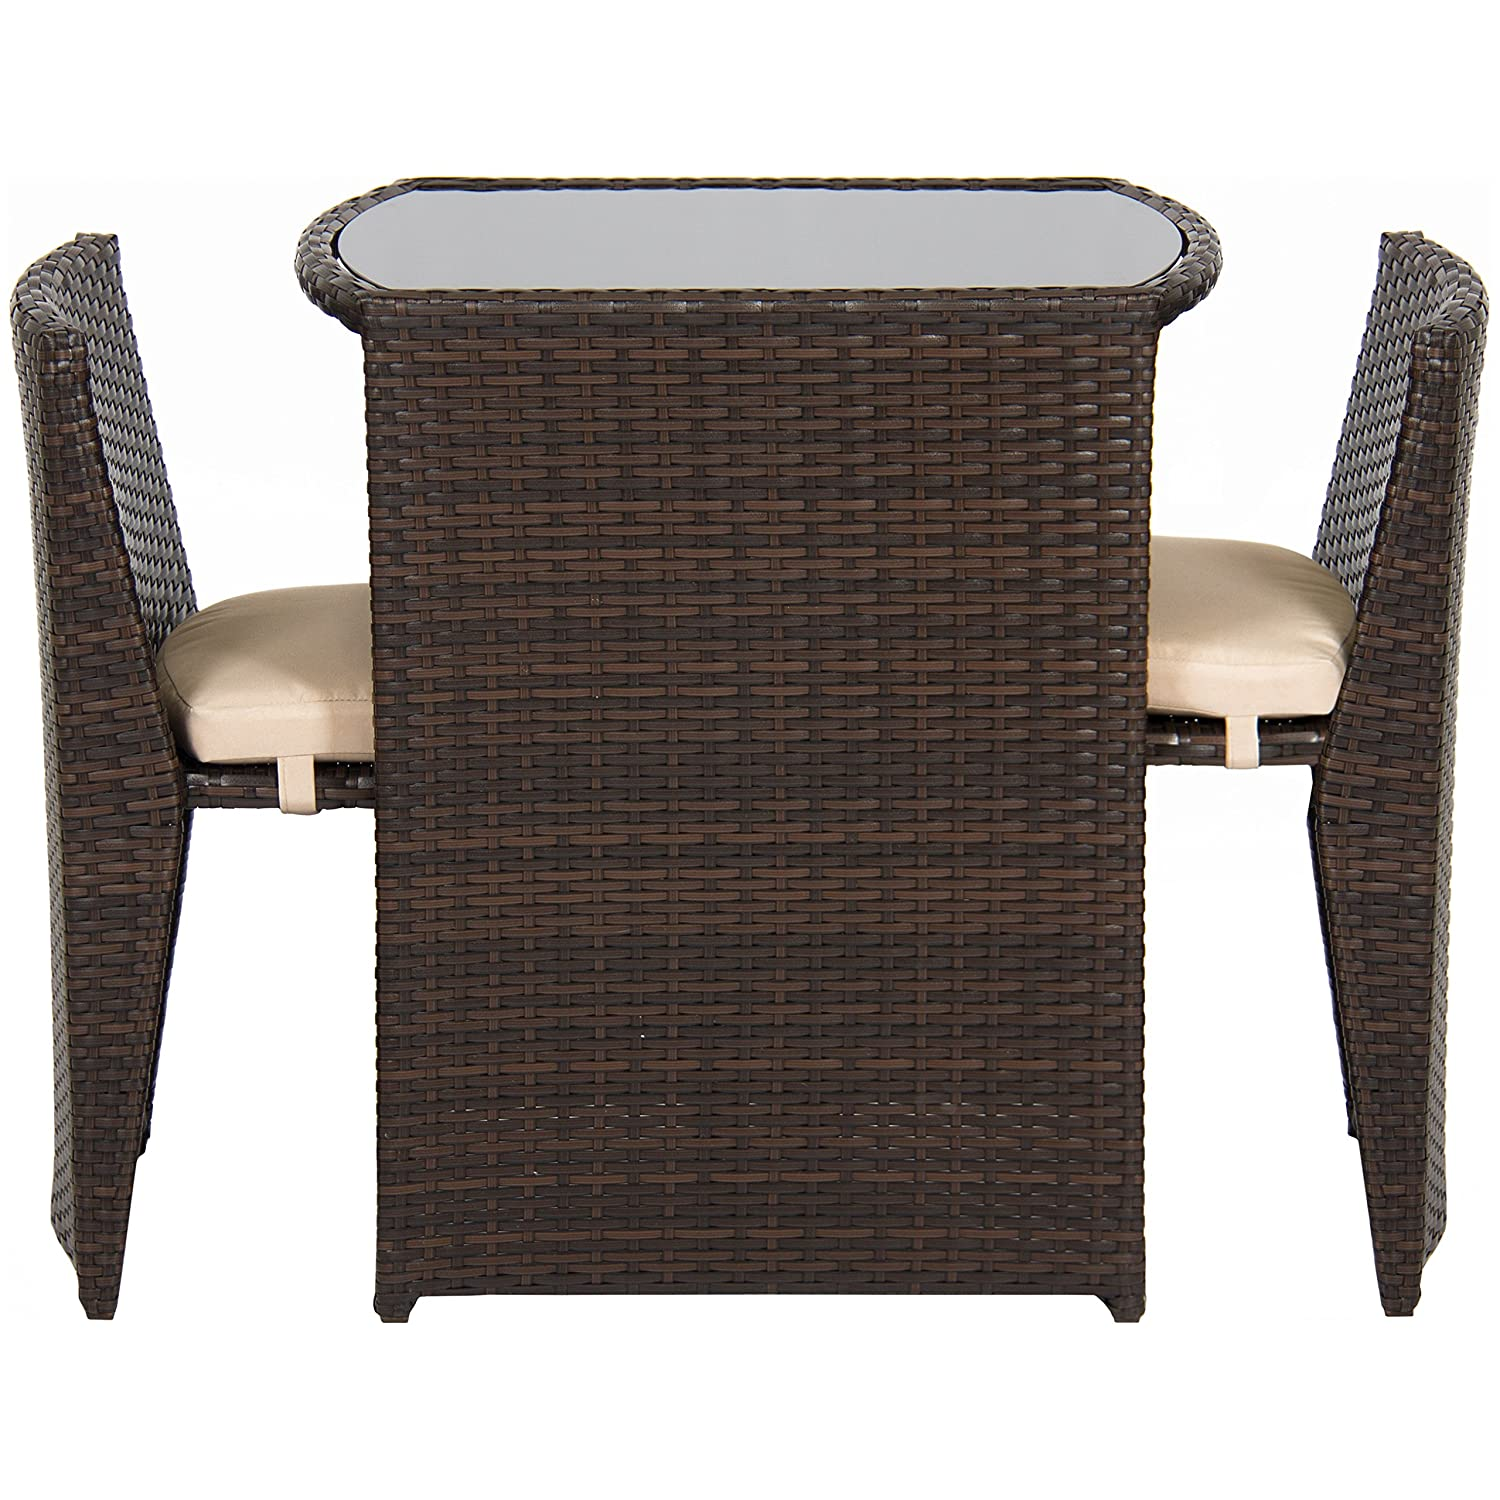 Amazoncom Best Choice Products Outdoor Patio Furniture Wicker - Outdoor patio furniture wicker